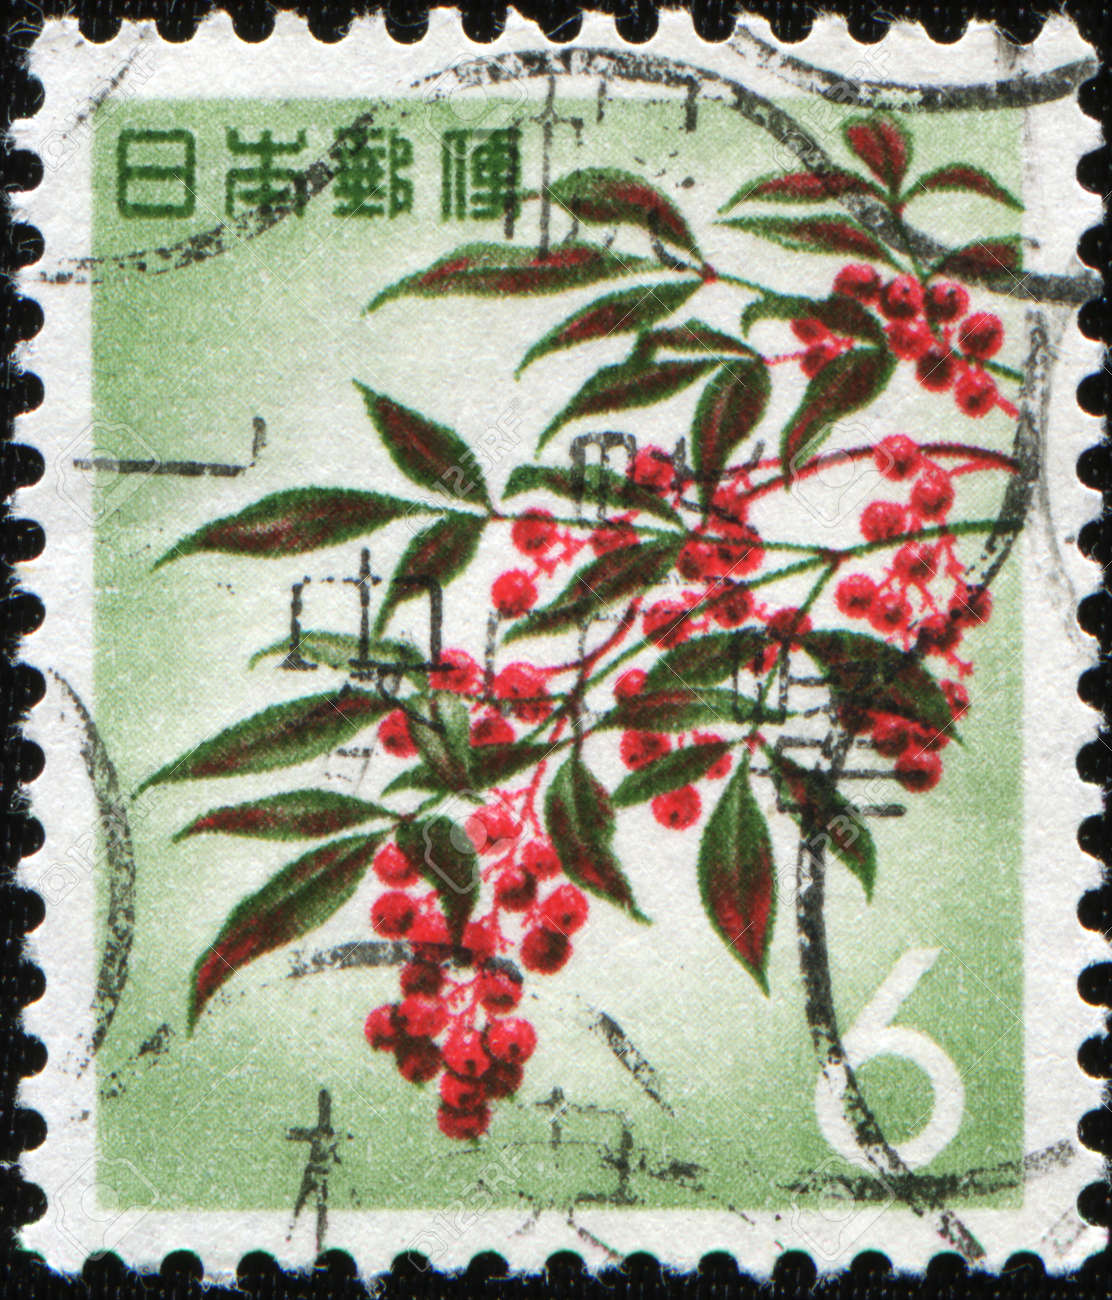 JAPAN - CIRCA 1960s: A stamp printed in Japan shows Japanese rowans or mountain-ashes - Sorbus commixta, circa 1960s Stock Photo - 8682021